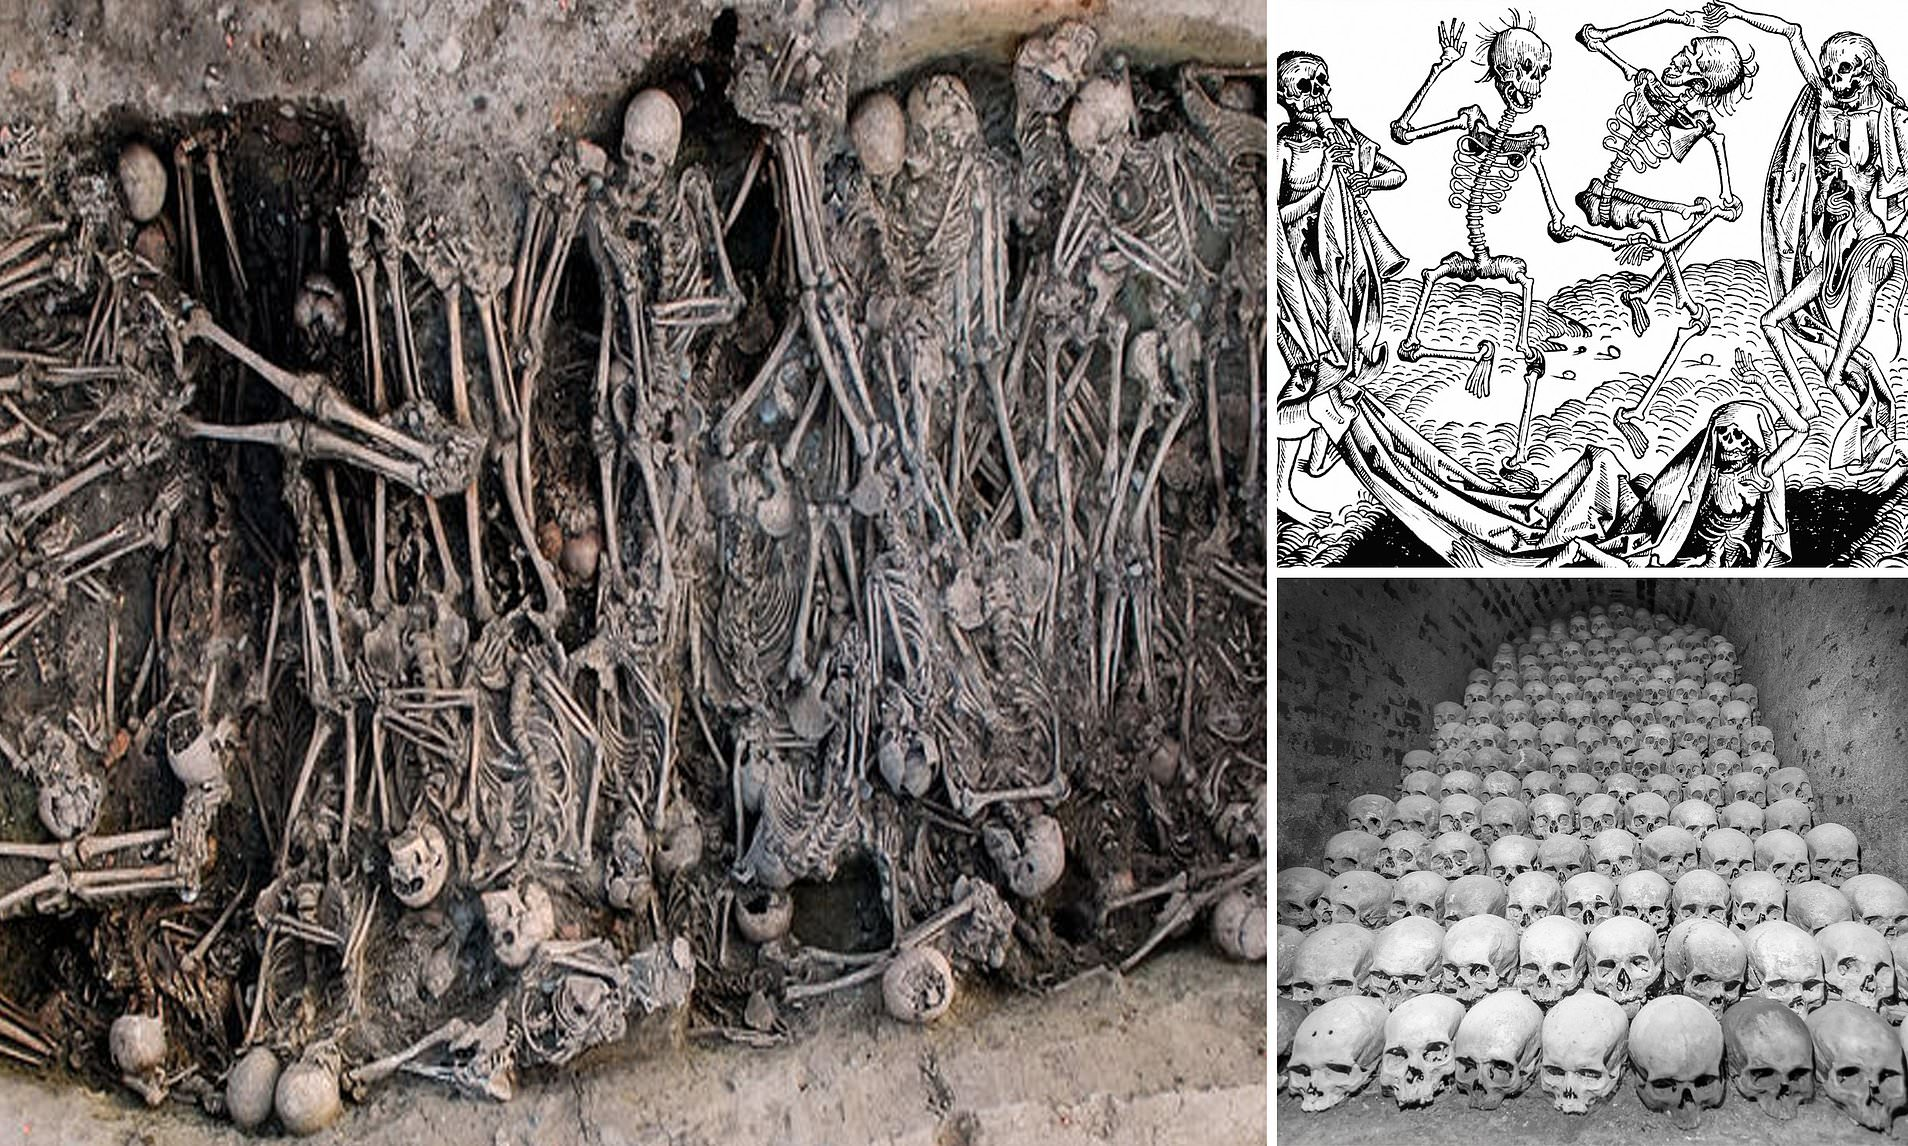 Badspiegel Jolled Victims Teeth Reveal How The Black Death That Killed